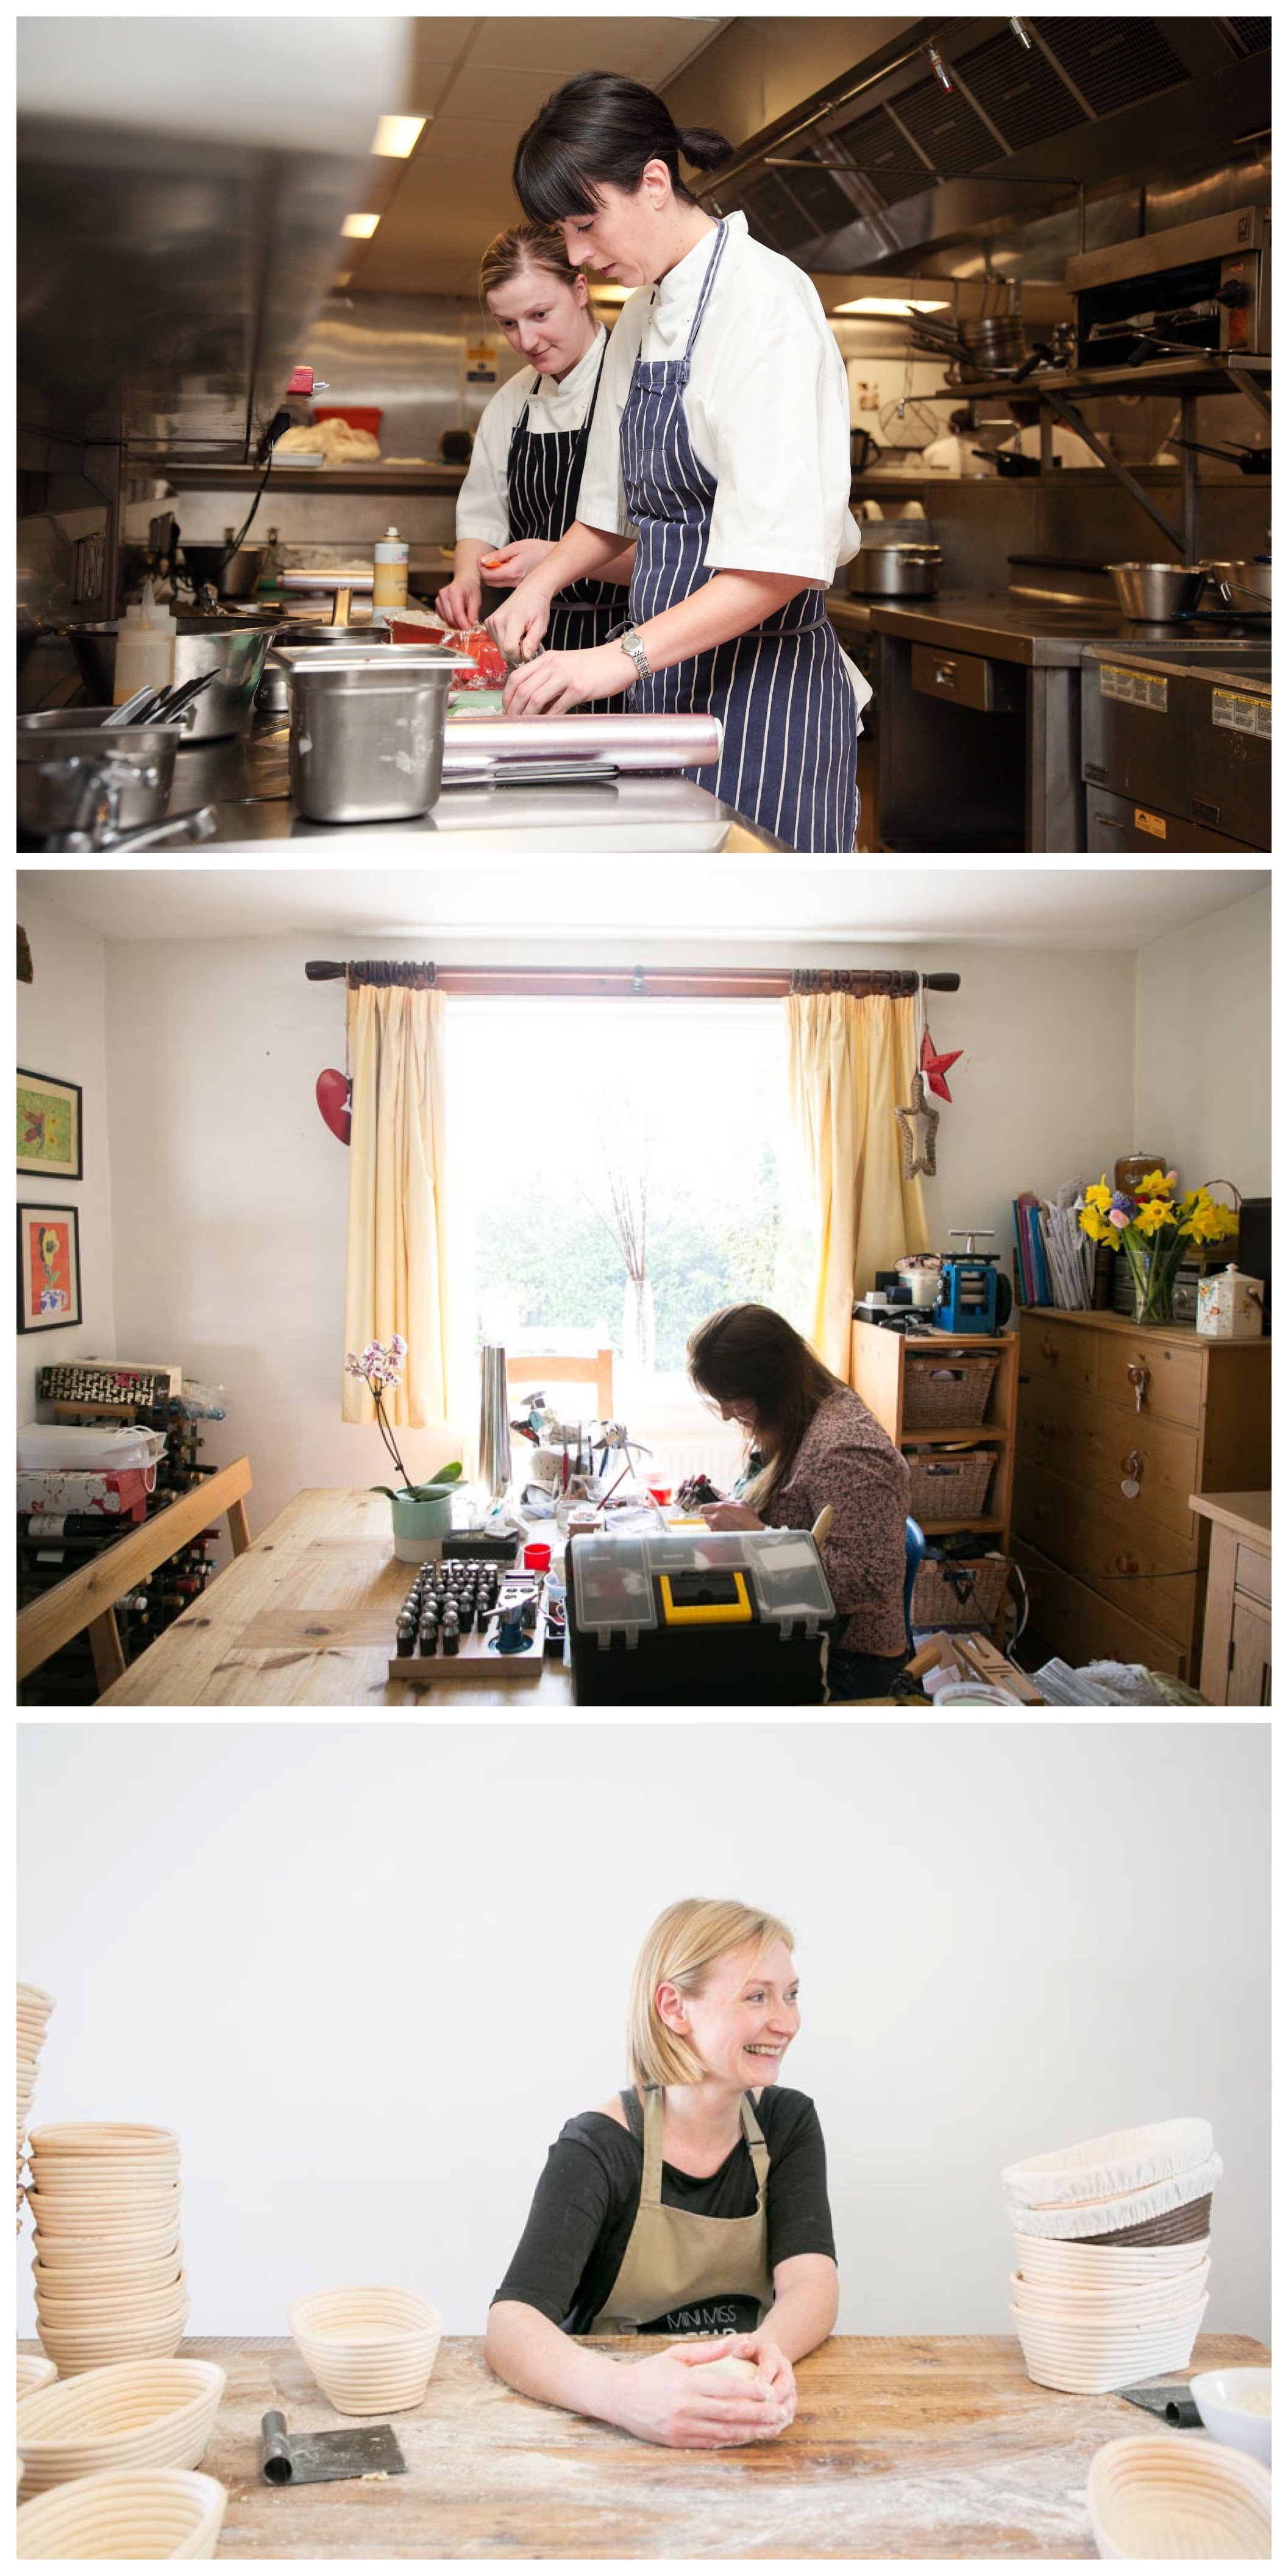 chef working in a kitchen, jewler woking in workshop, baker working at table